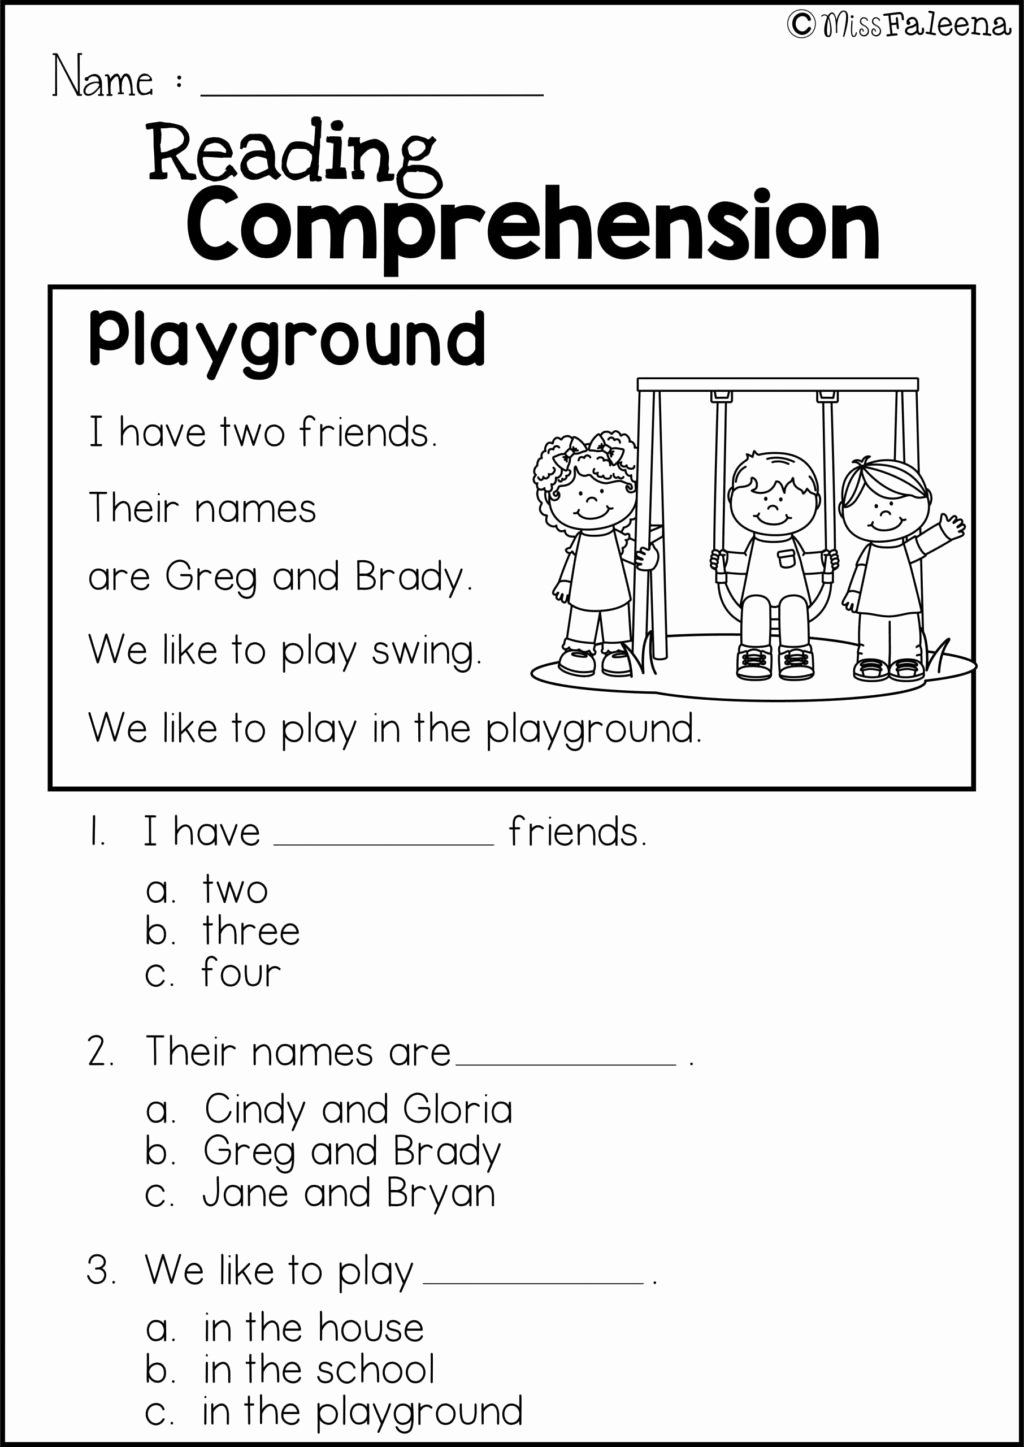 First Grade Reading Comprehension Worksheets Kids Worksheet Worksheet Ideas 1st Grade Reading Prehension